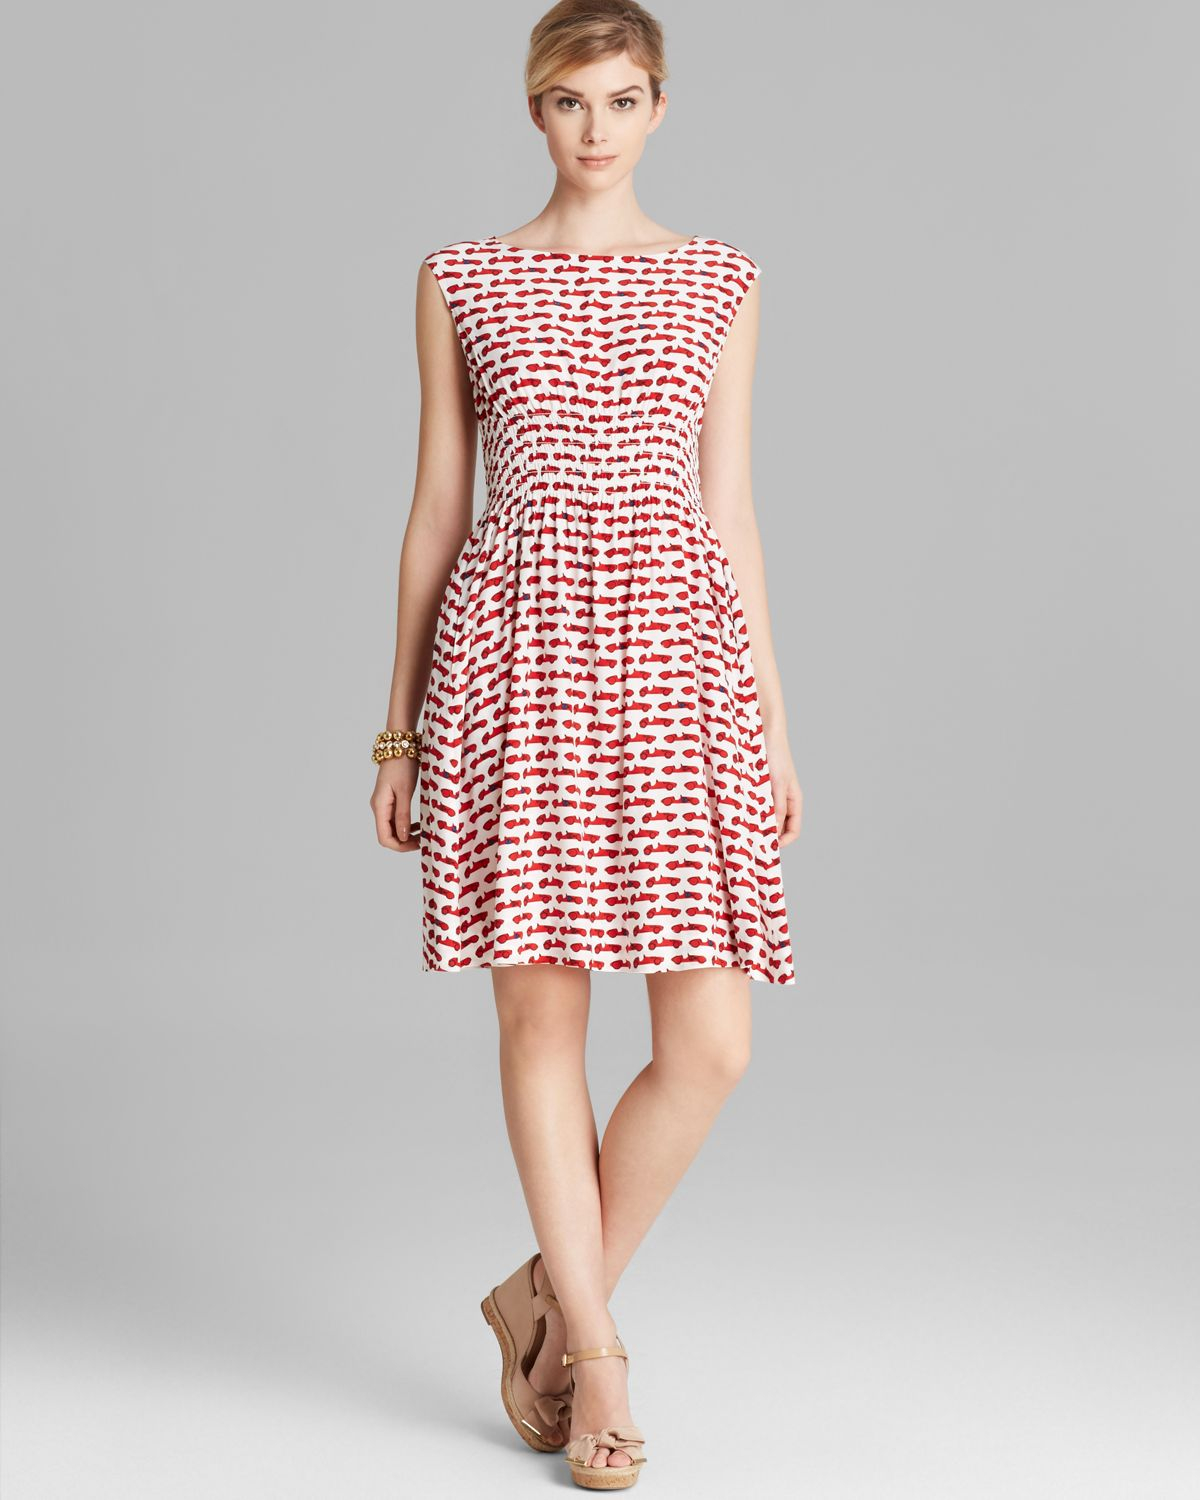 Kate Spade Blaire Dress In Red Lacquer Red Autobahn Lyst